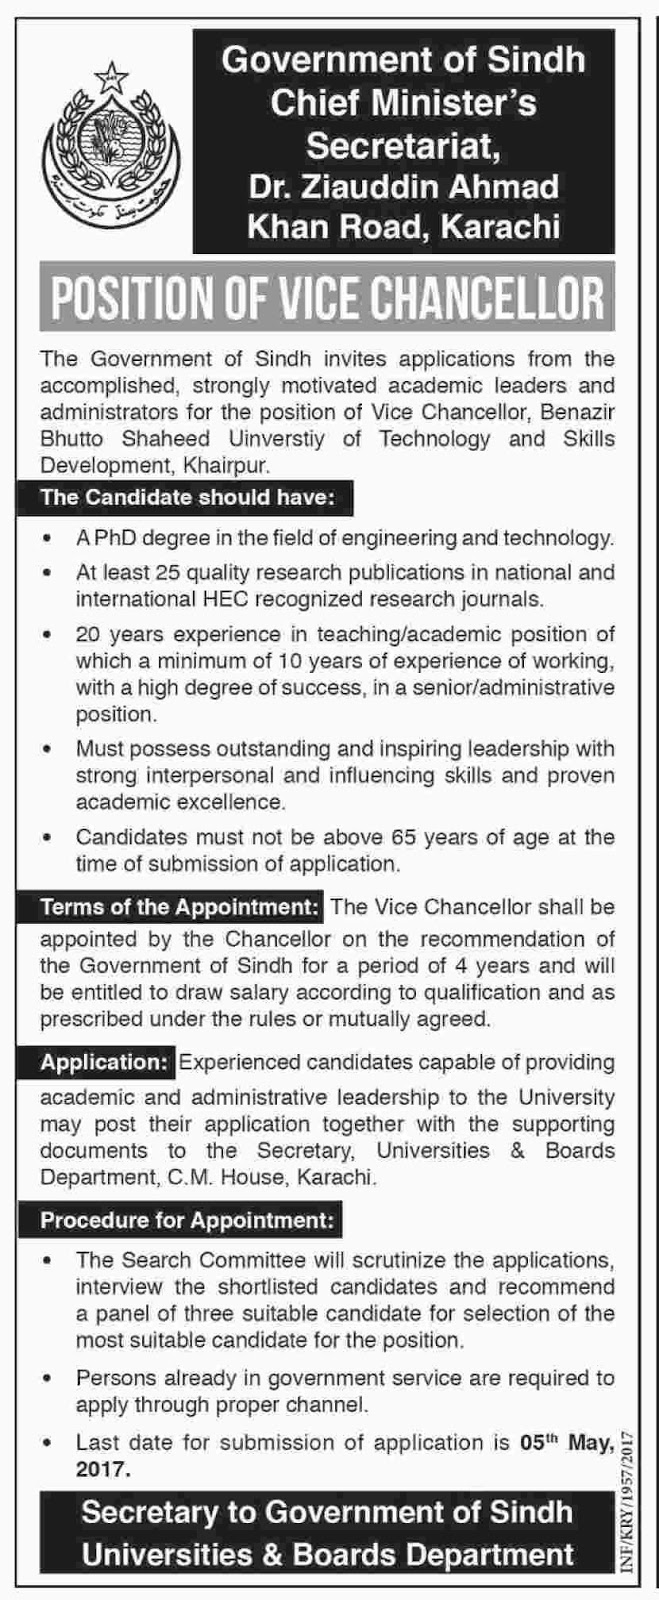 Government of Sindh Chief Minister Secretariat Jobs